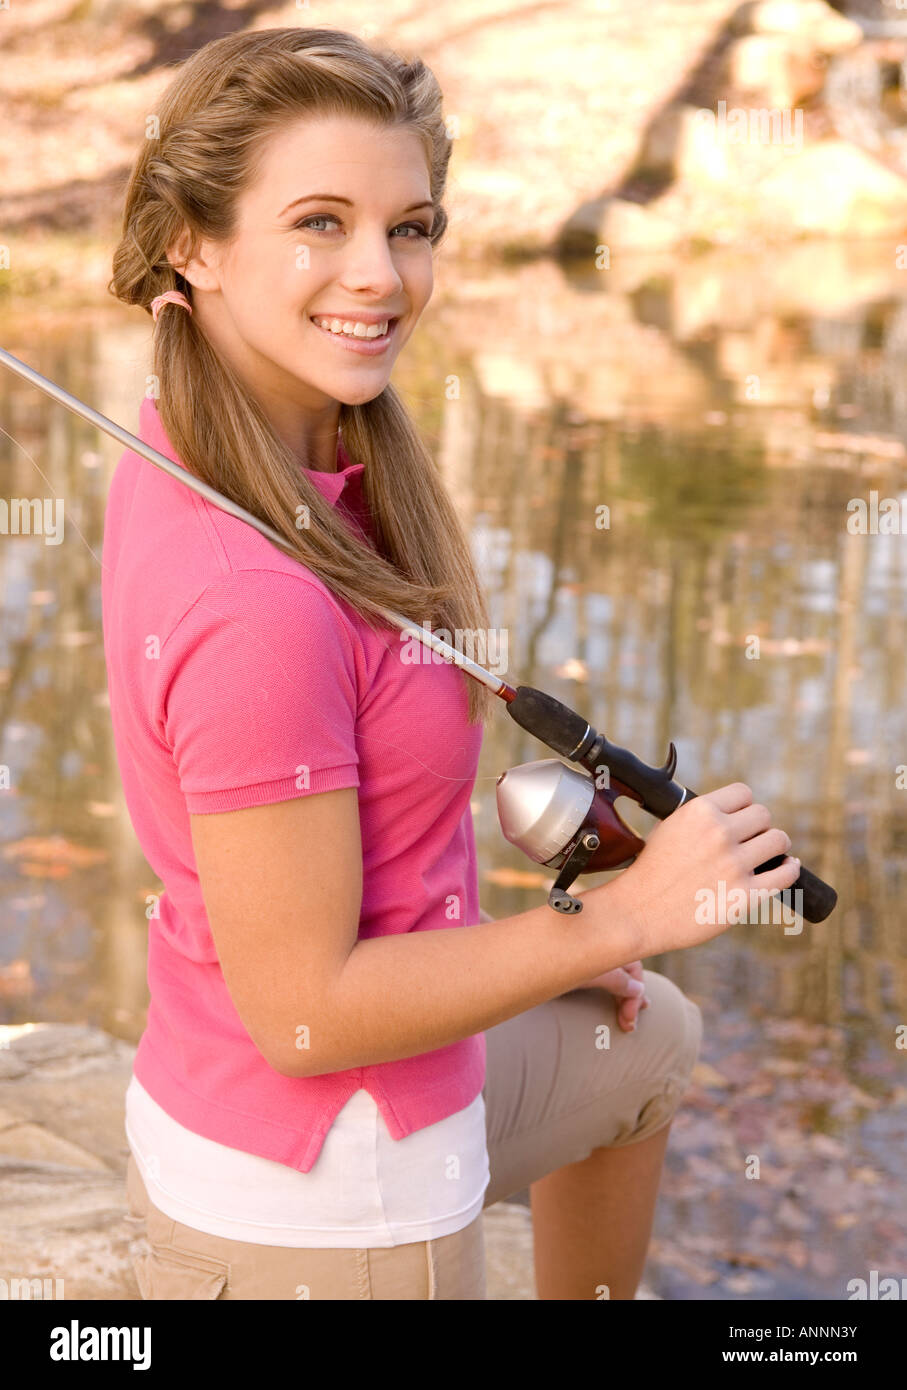 Teen Girl (15-17) At Pond, Holding Fishing Rod And Reel